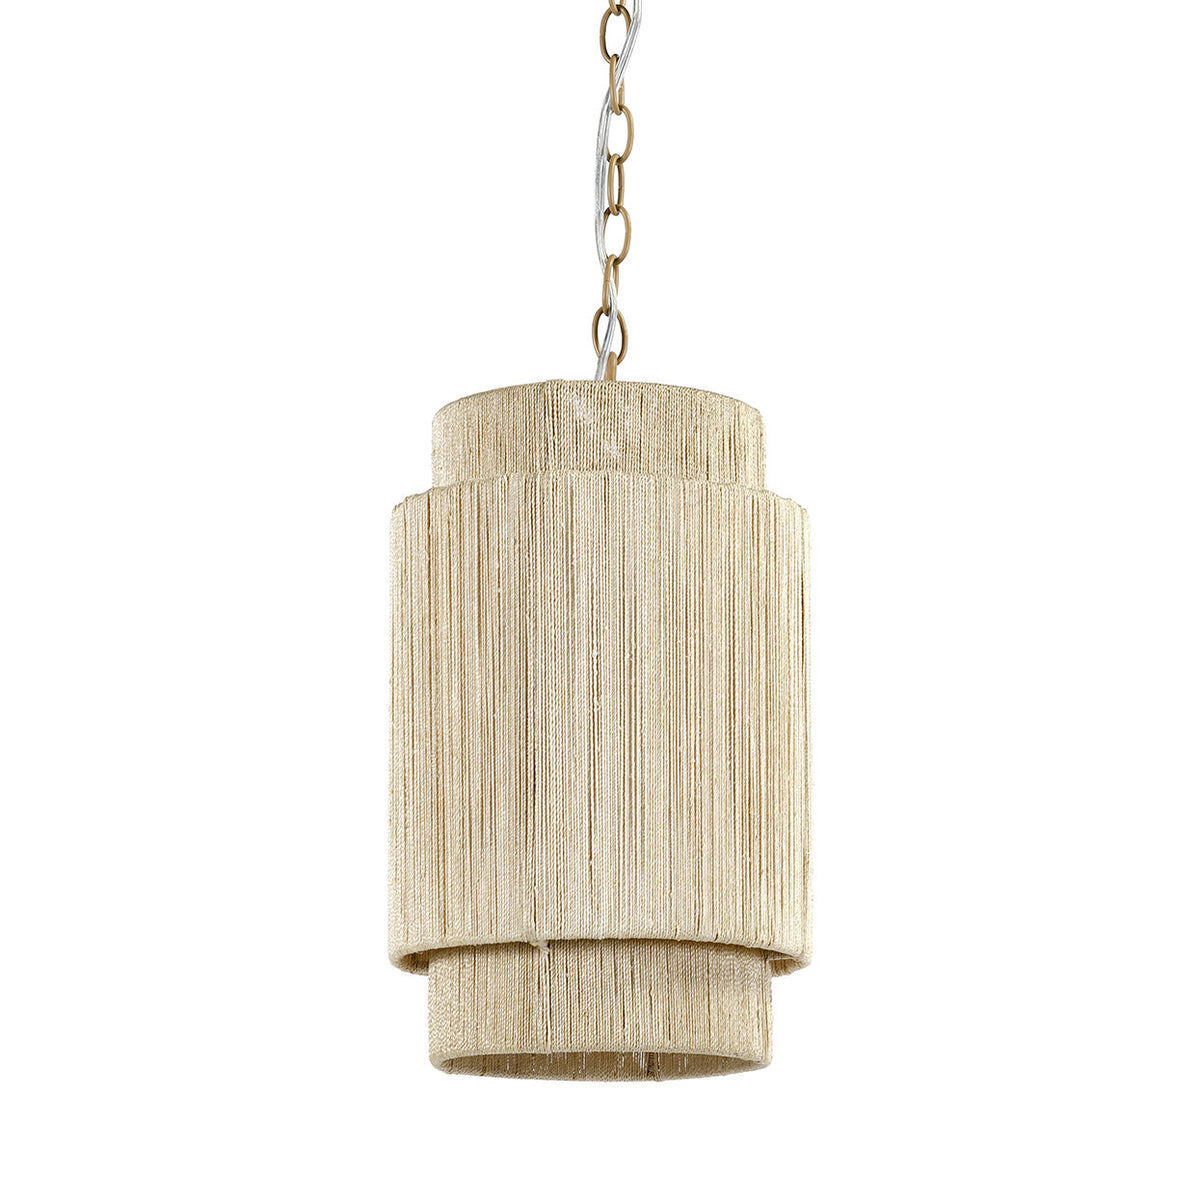 Everly Small Pendant